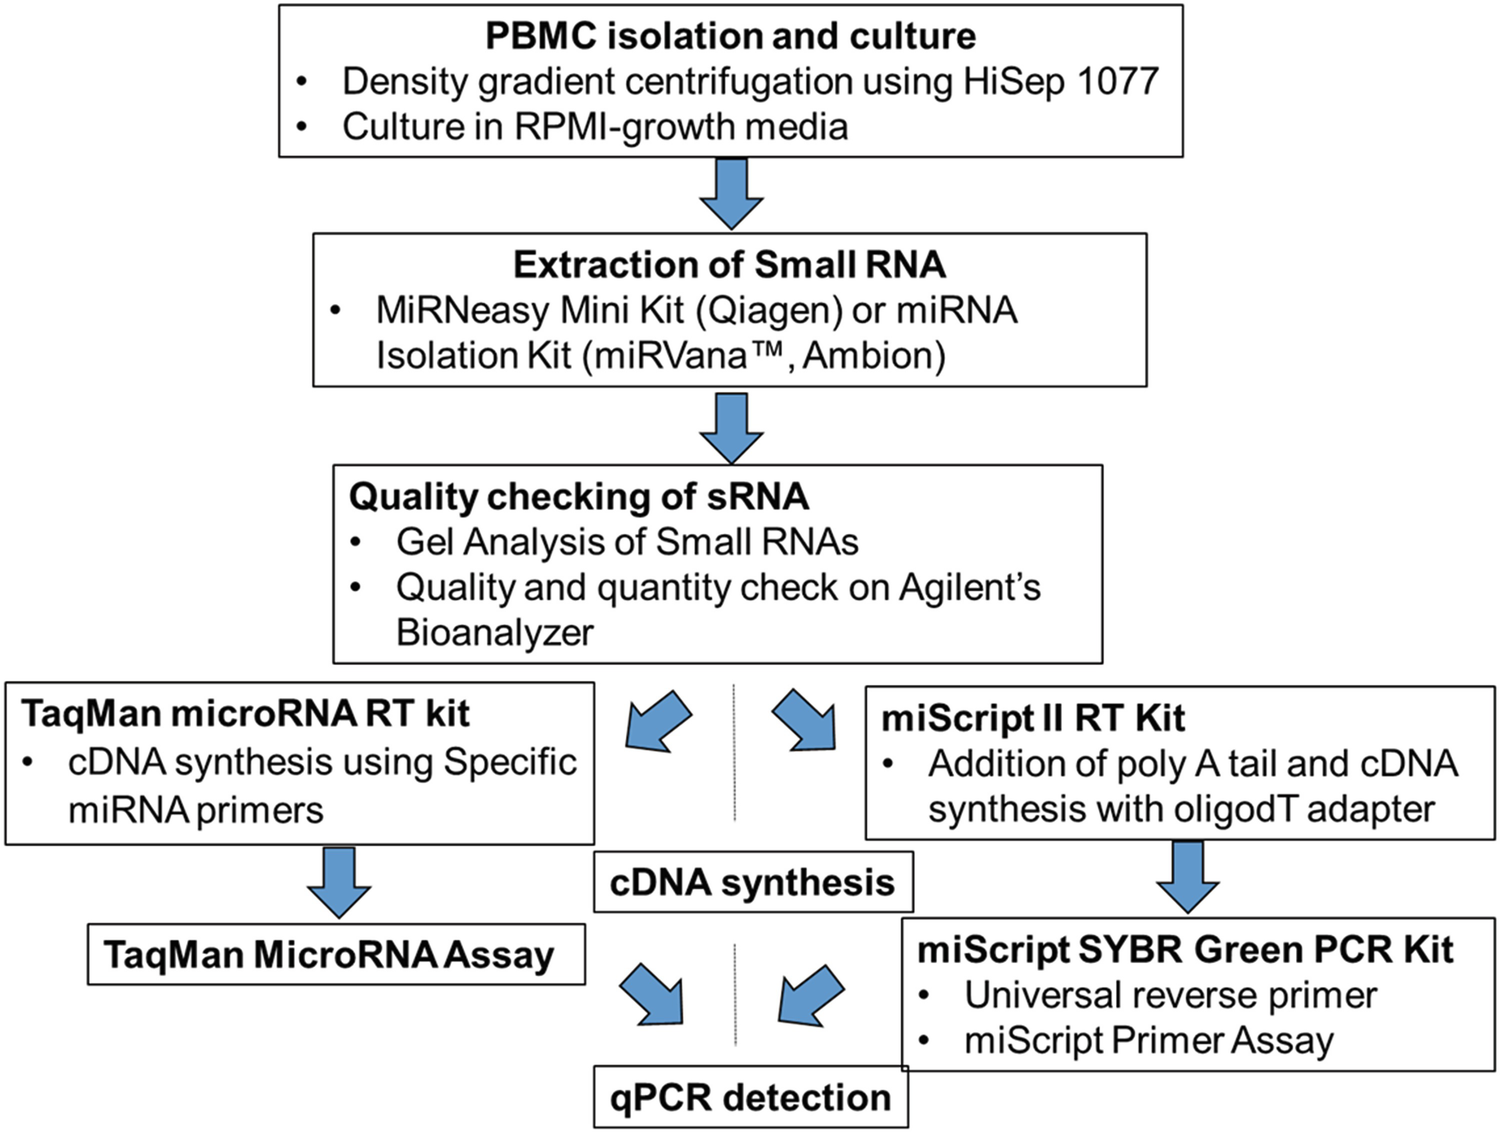 Extraction And Qpcr Based Detection Of Mirnas From Cultured Pbmcs Of Bubaline Origin Springerlink